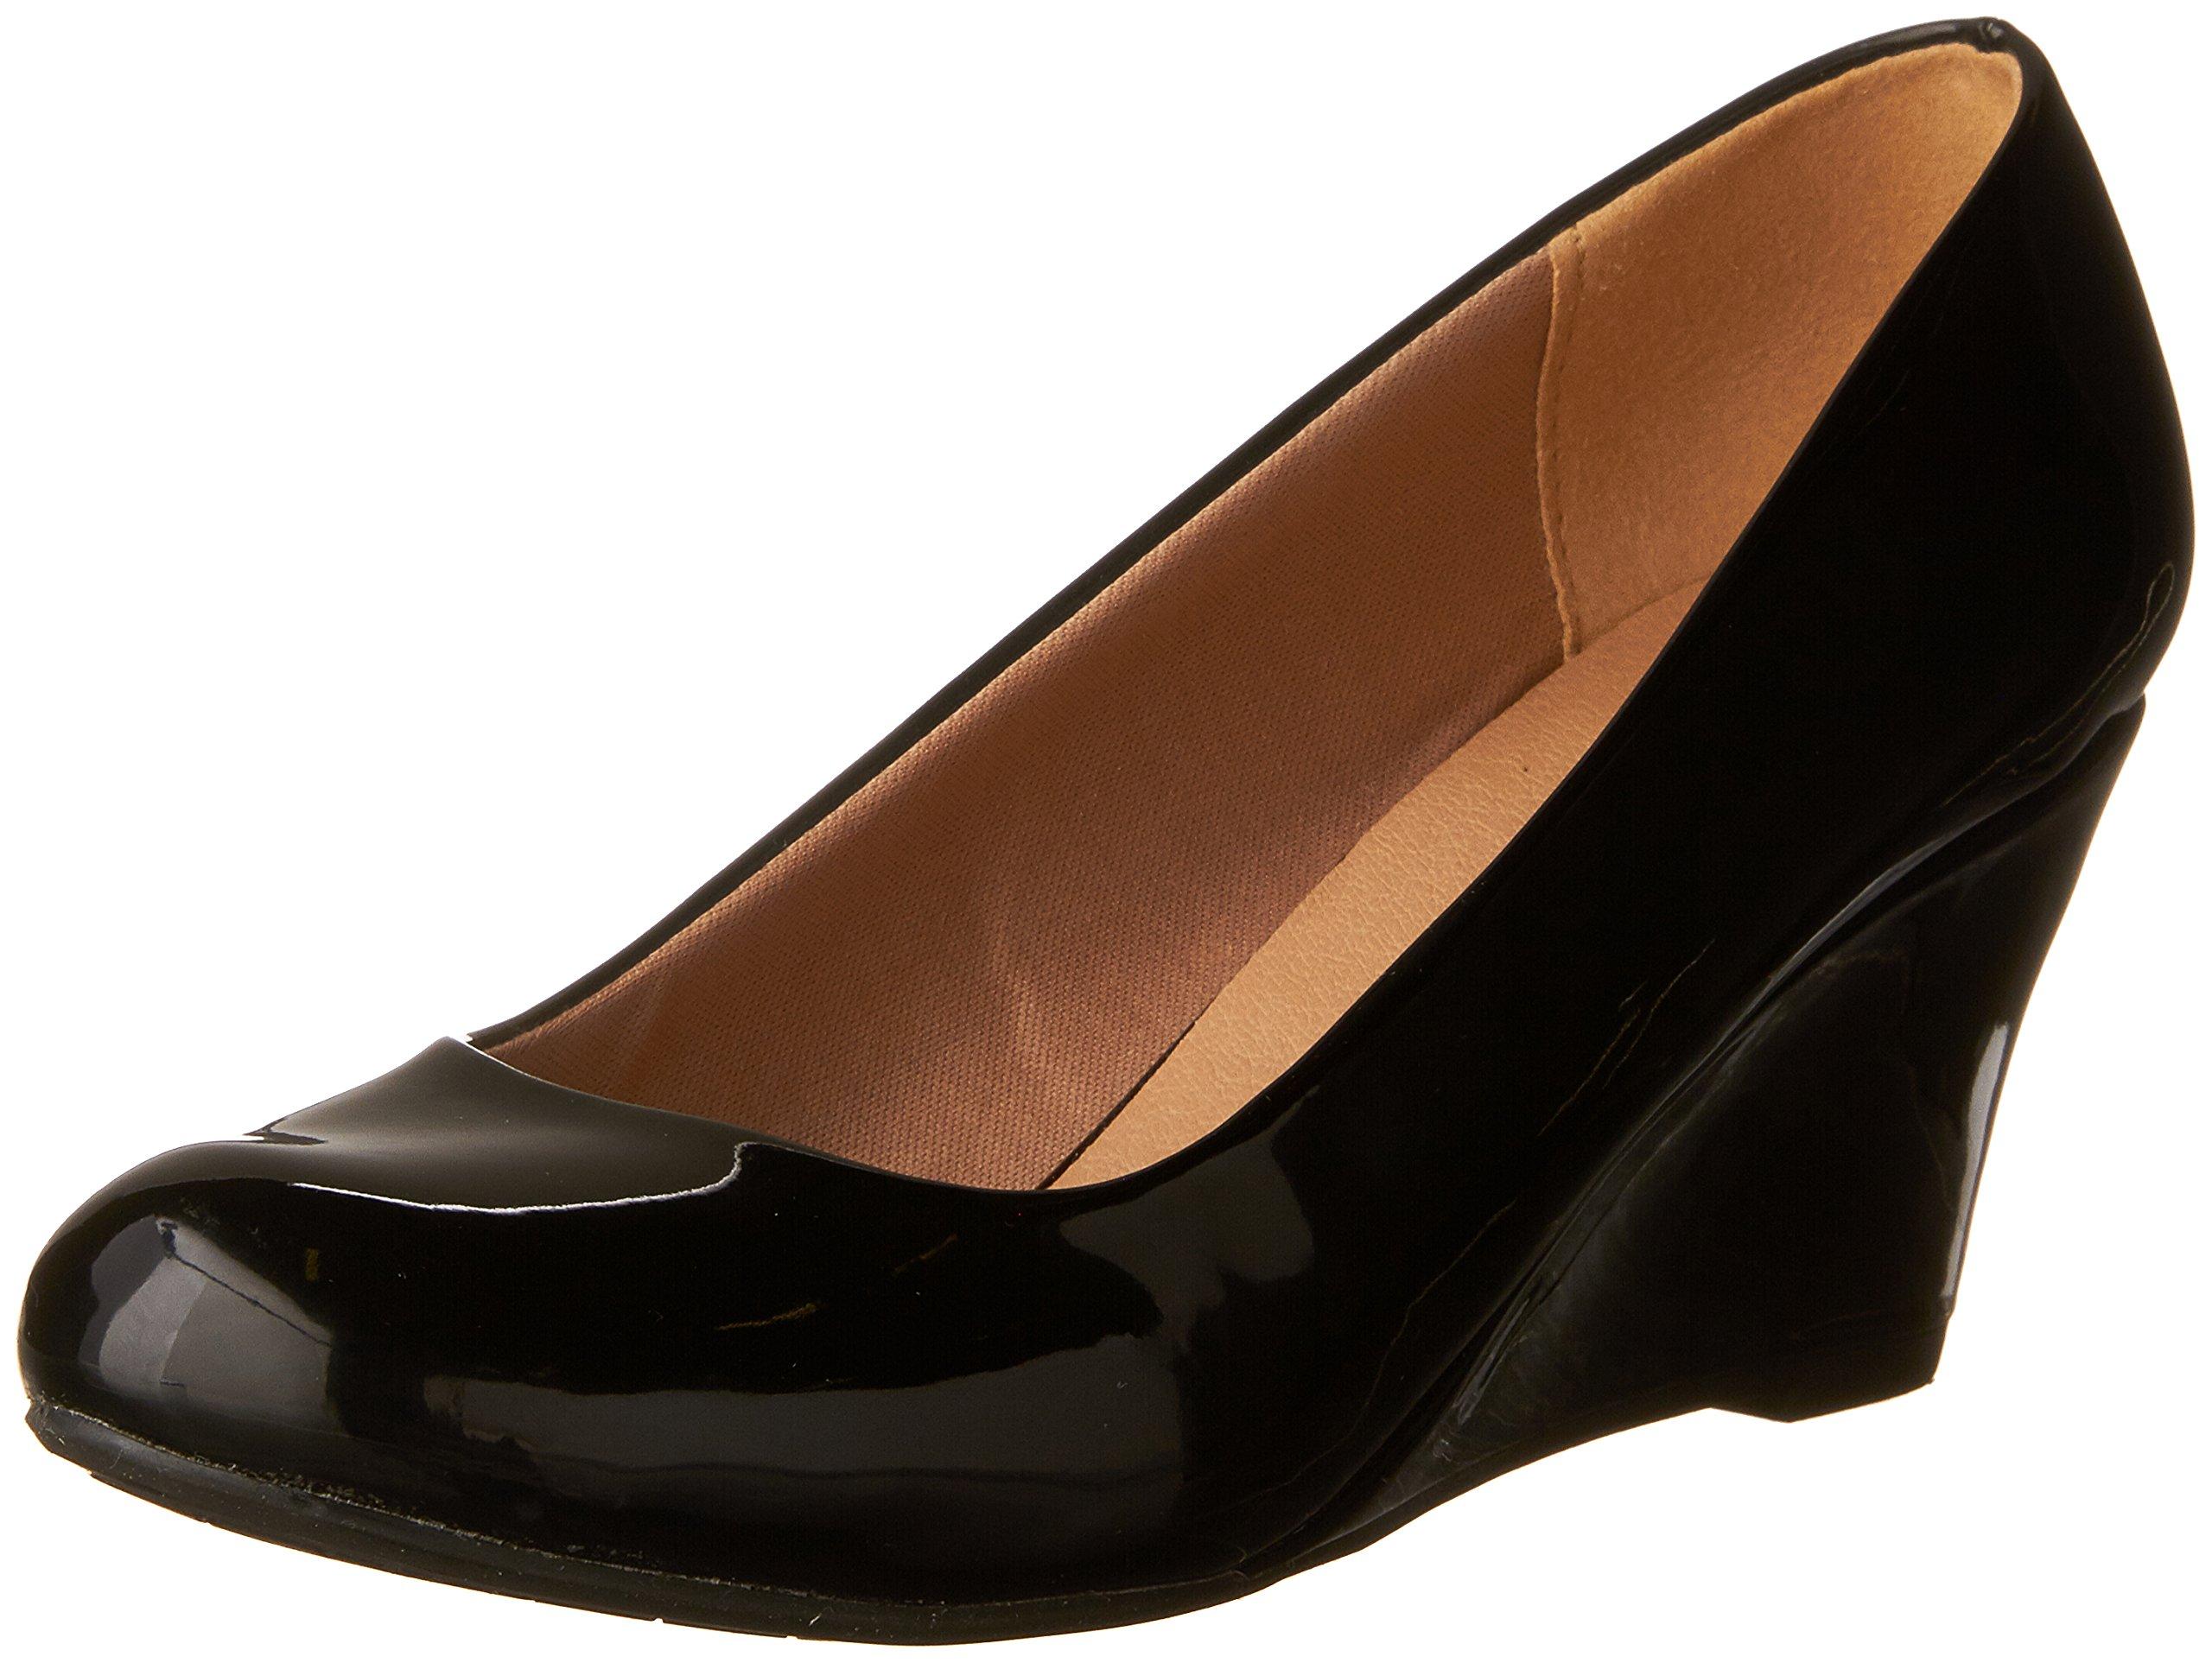 Forever Link Women's DORIS-22 Patent Round Toe Wedge Pumps Black 7